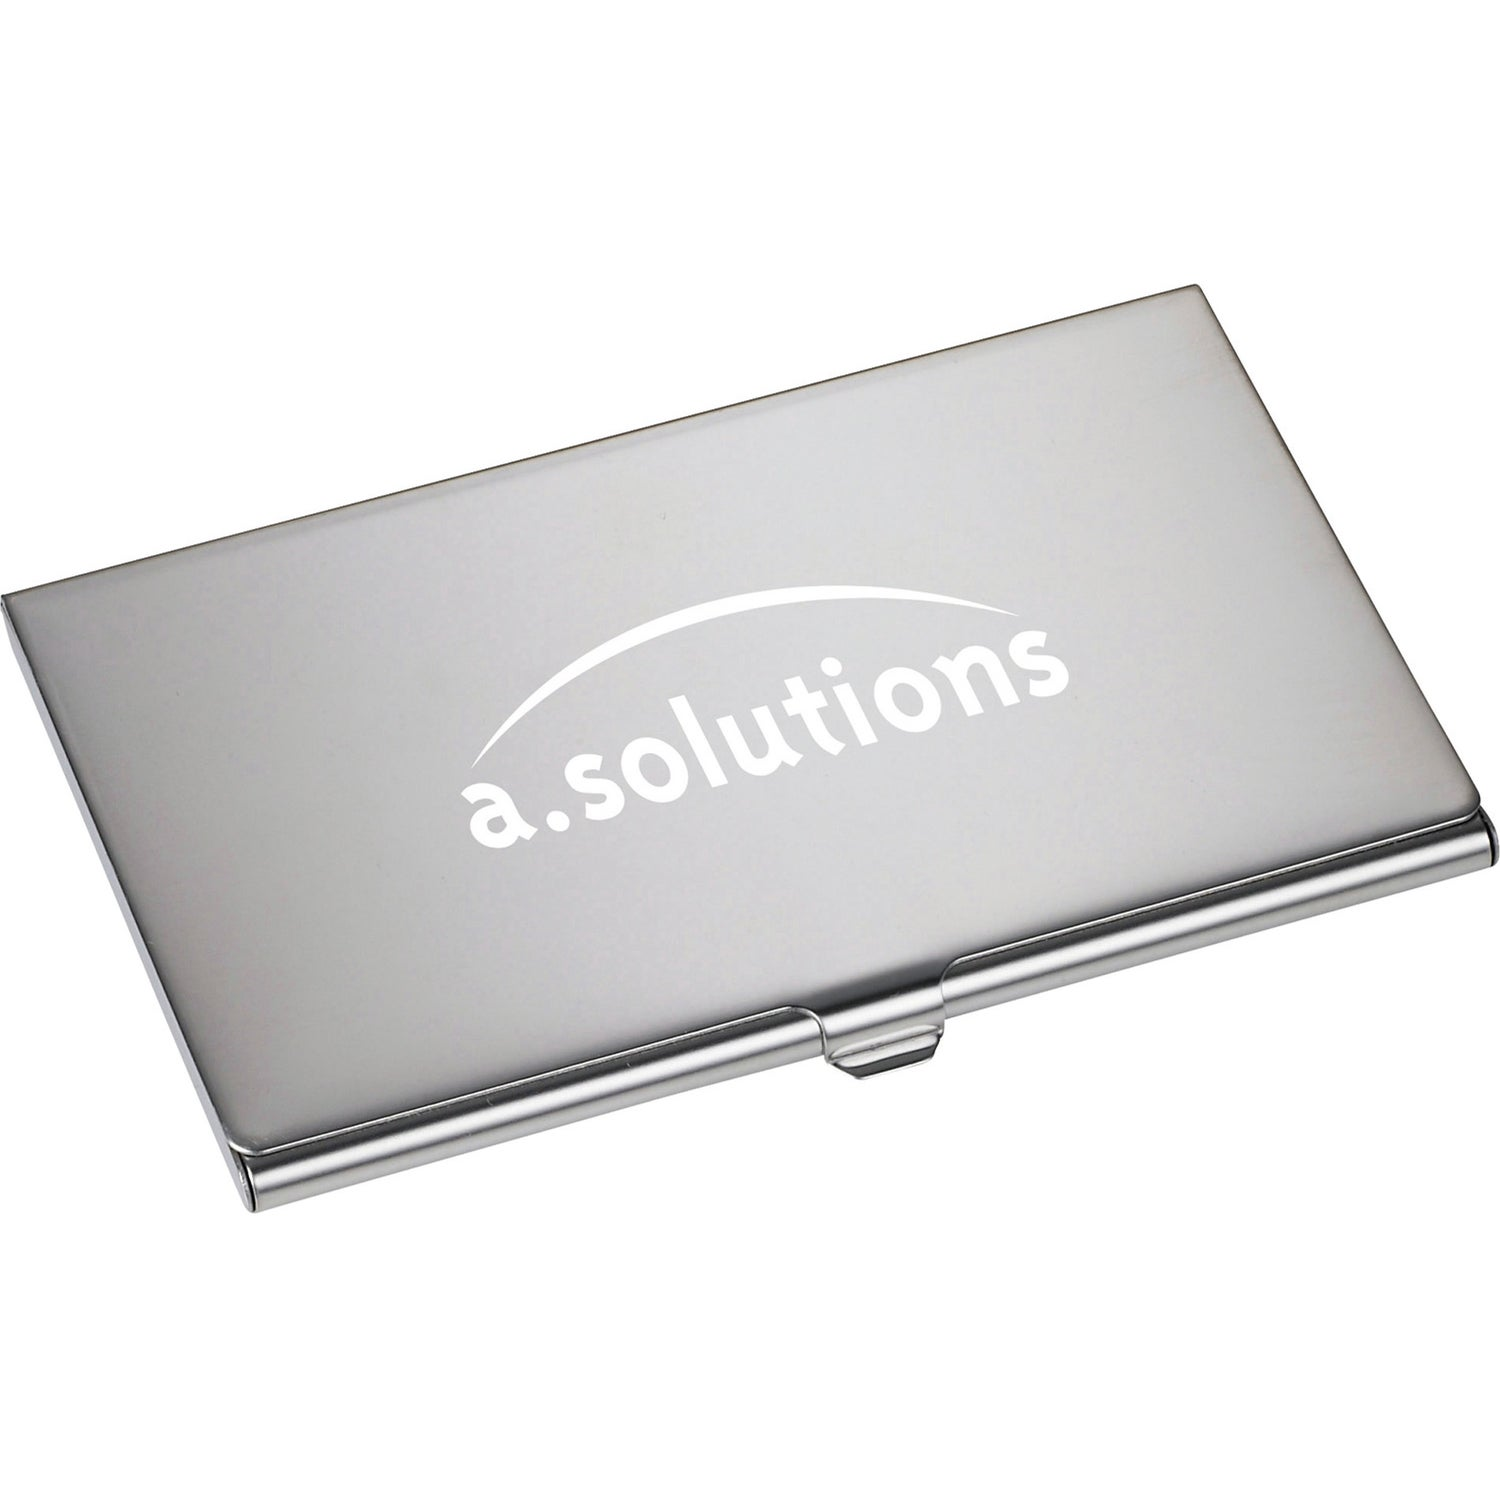 8 pocket business card holder image collections free business cards alphabetical business card holder choice image free business cards best business card case images free business magicingreecefo Choice Image